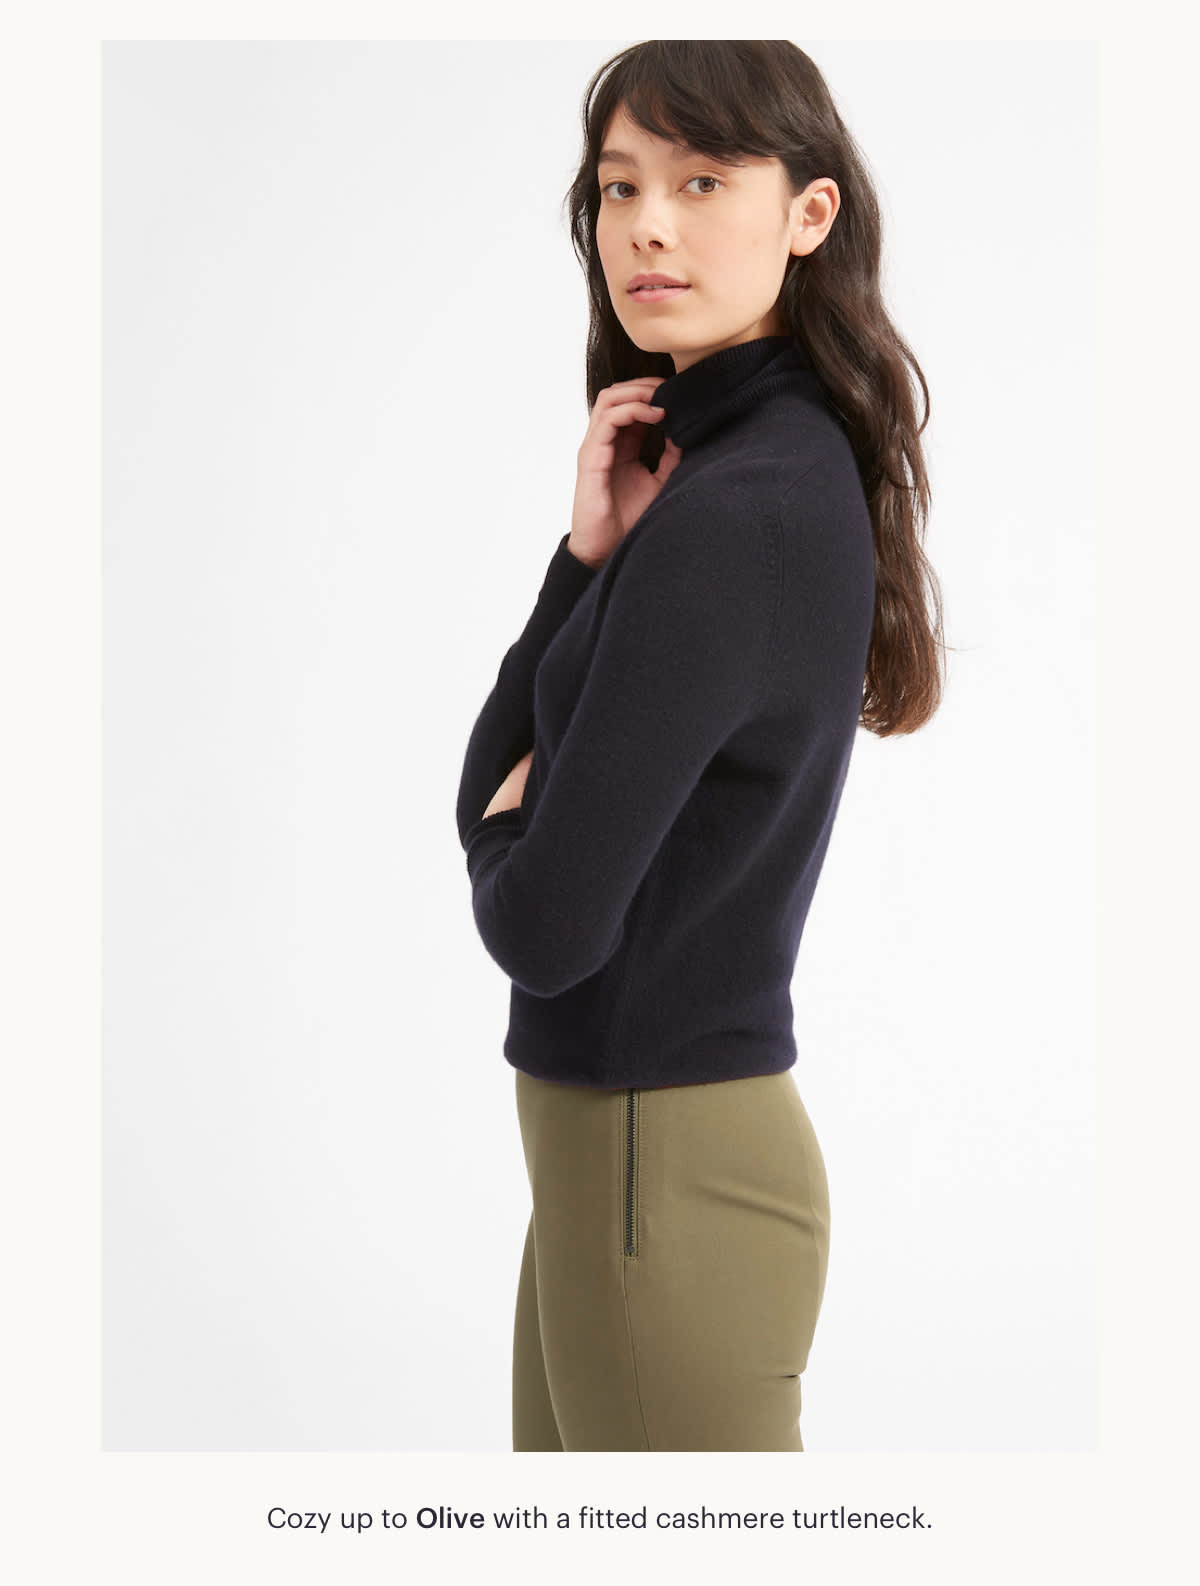 Cozy up to Olive, with a fitted cashmere turtleneck.